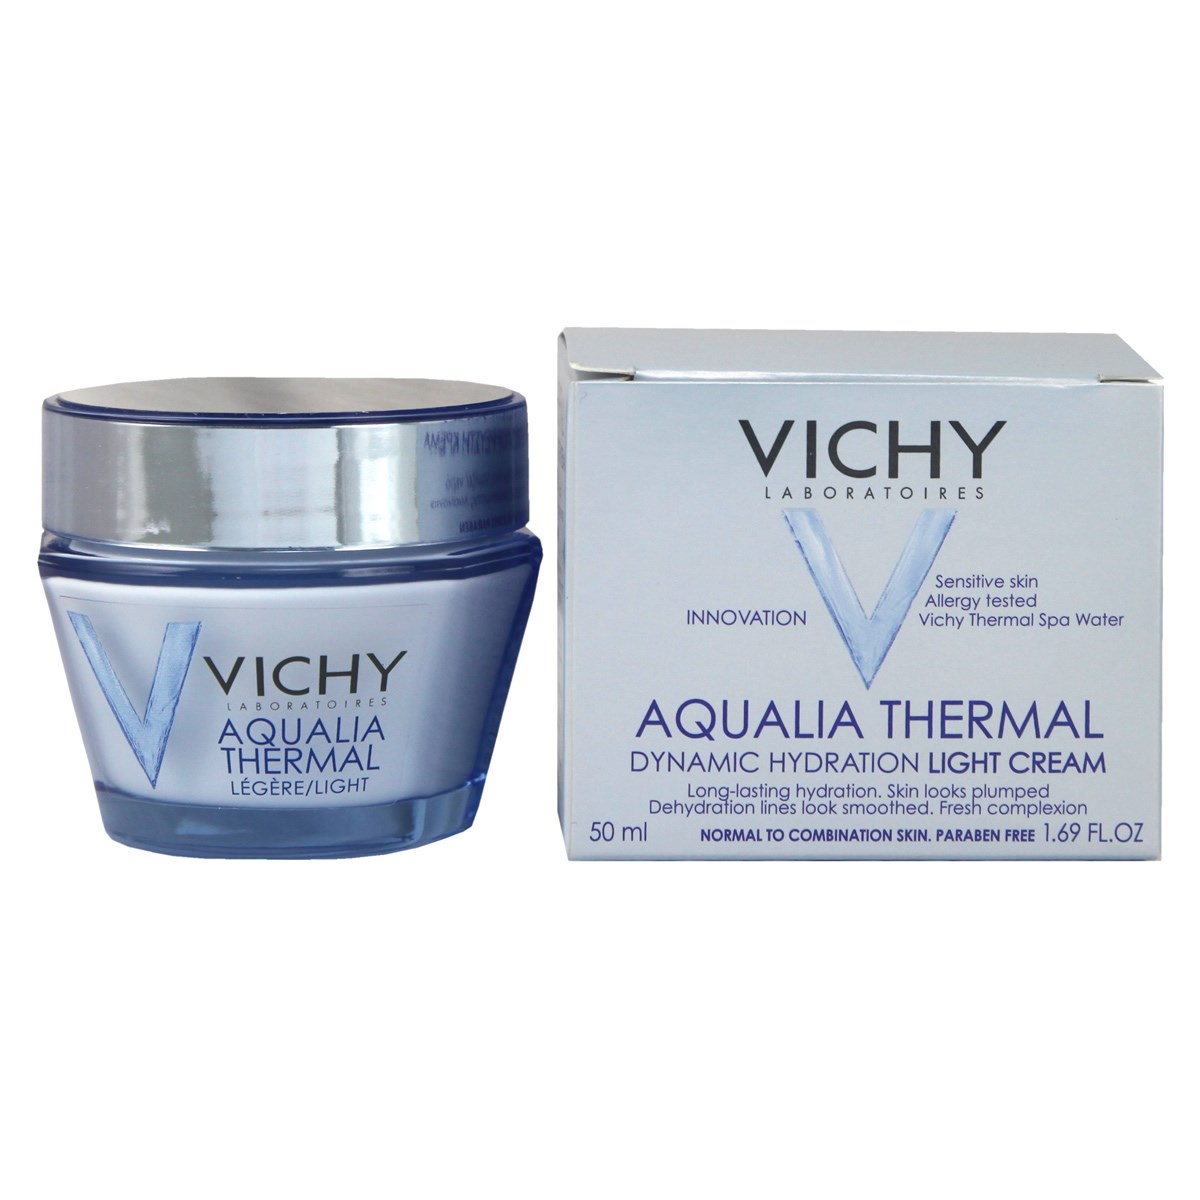 Vichy Aqualia Thermal Dynamic Hydration Light Cream